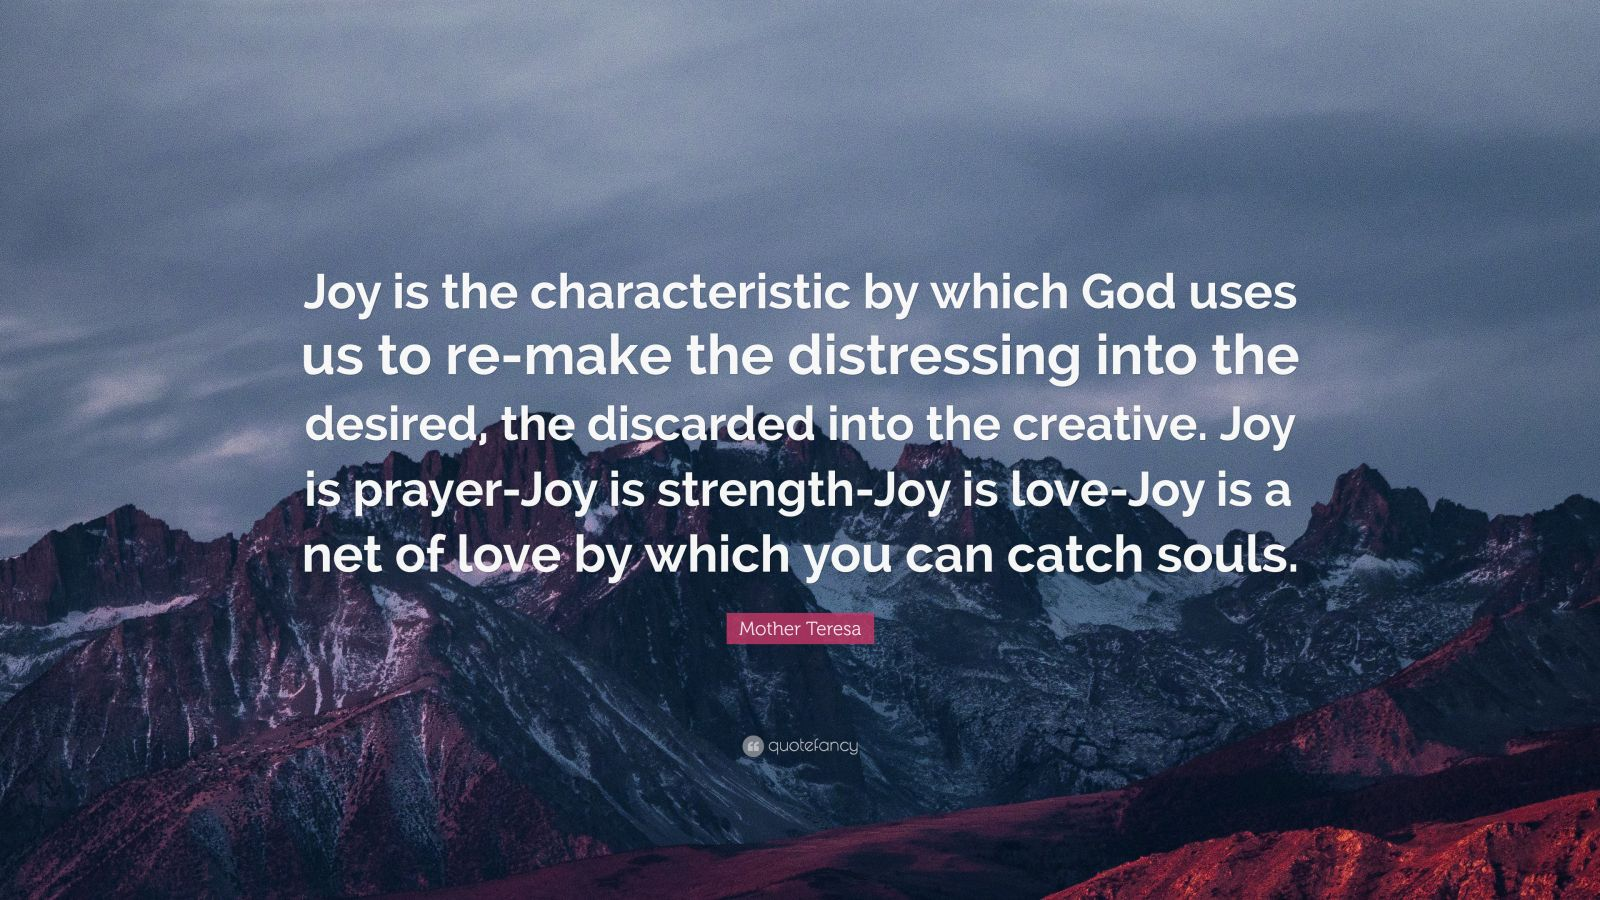 """Mother Teresa Quote: """"Joy is the characteristic by which God uses us to re-make the distressing into the desired, the discarded into the creative. Joy is prayer-Joy is strength-Joy is love-Joy is a net of love by which you can catch souls."""""""